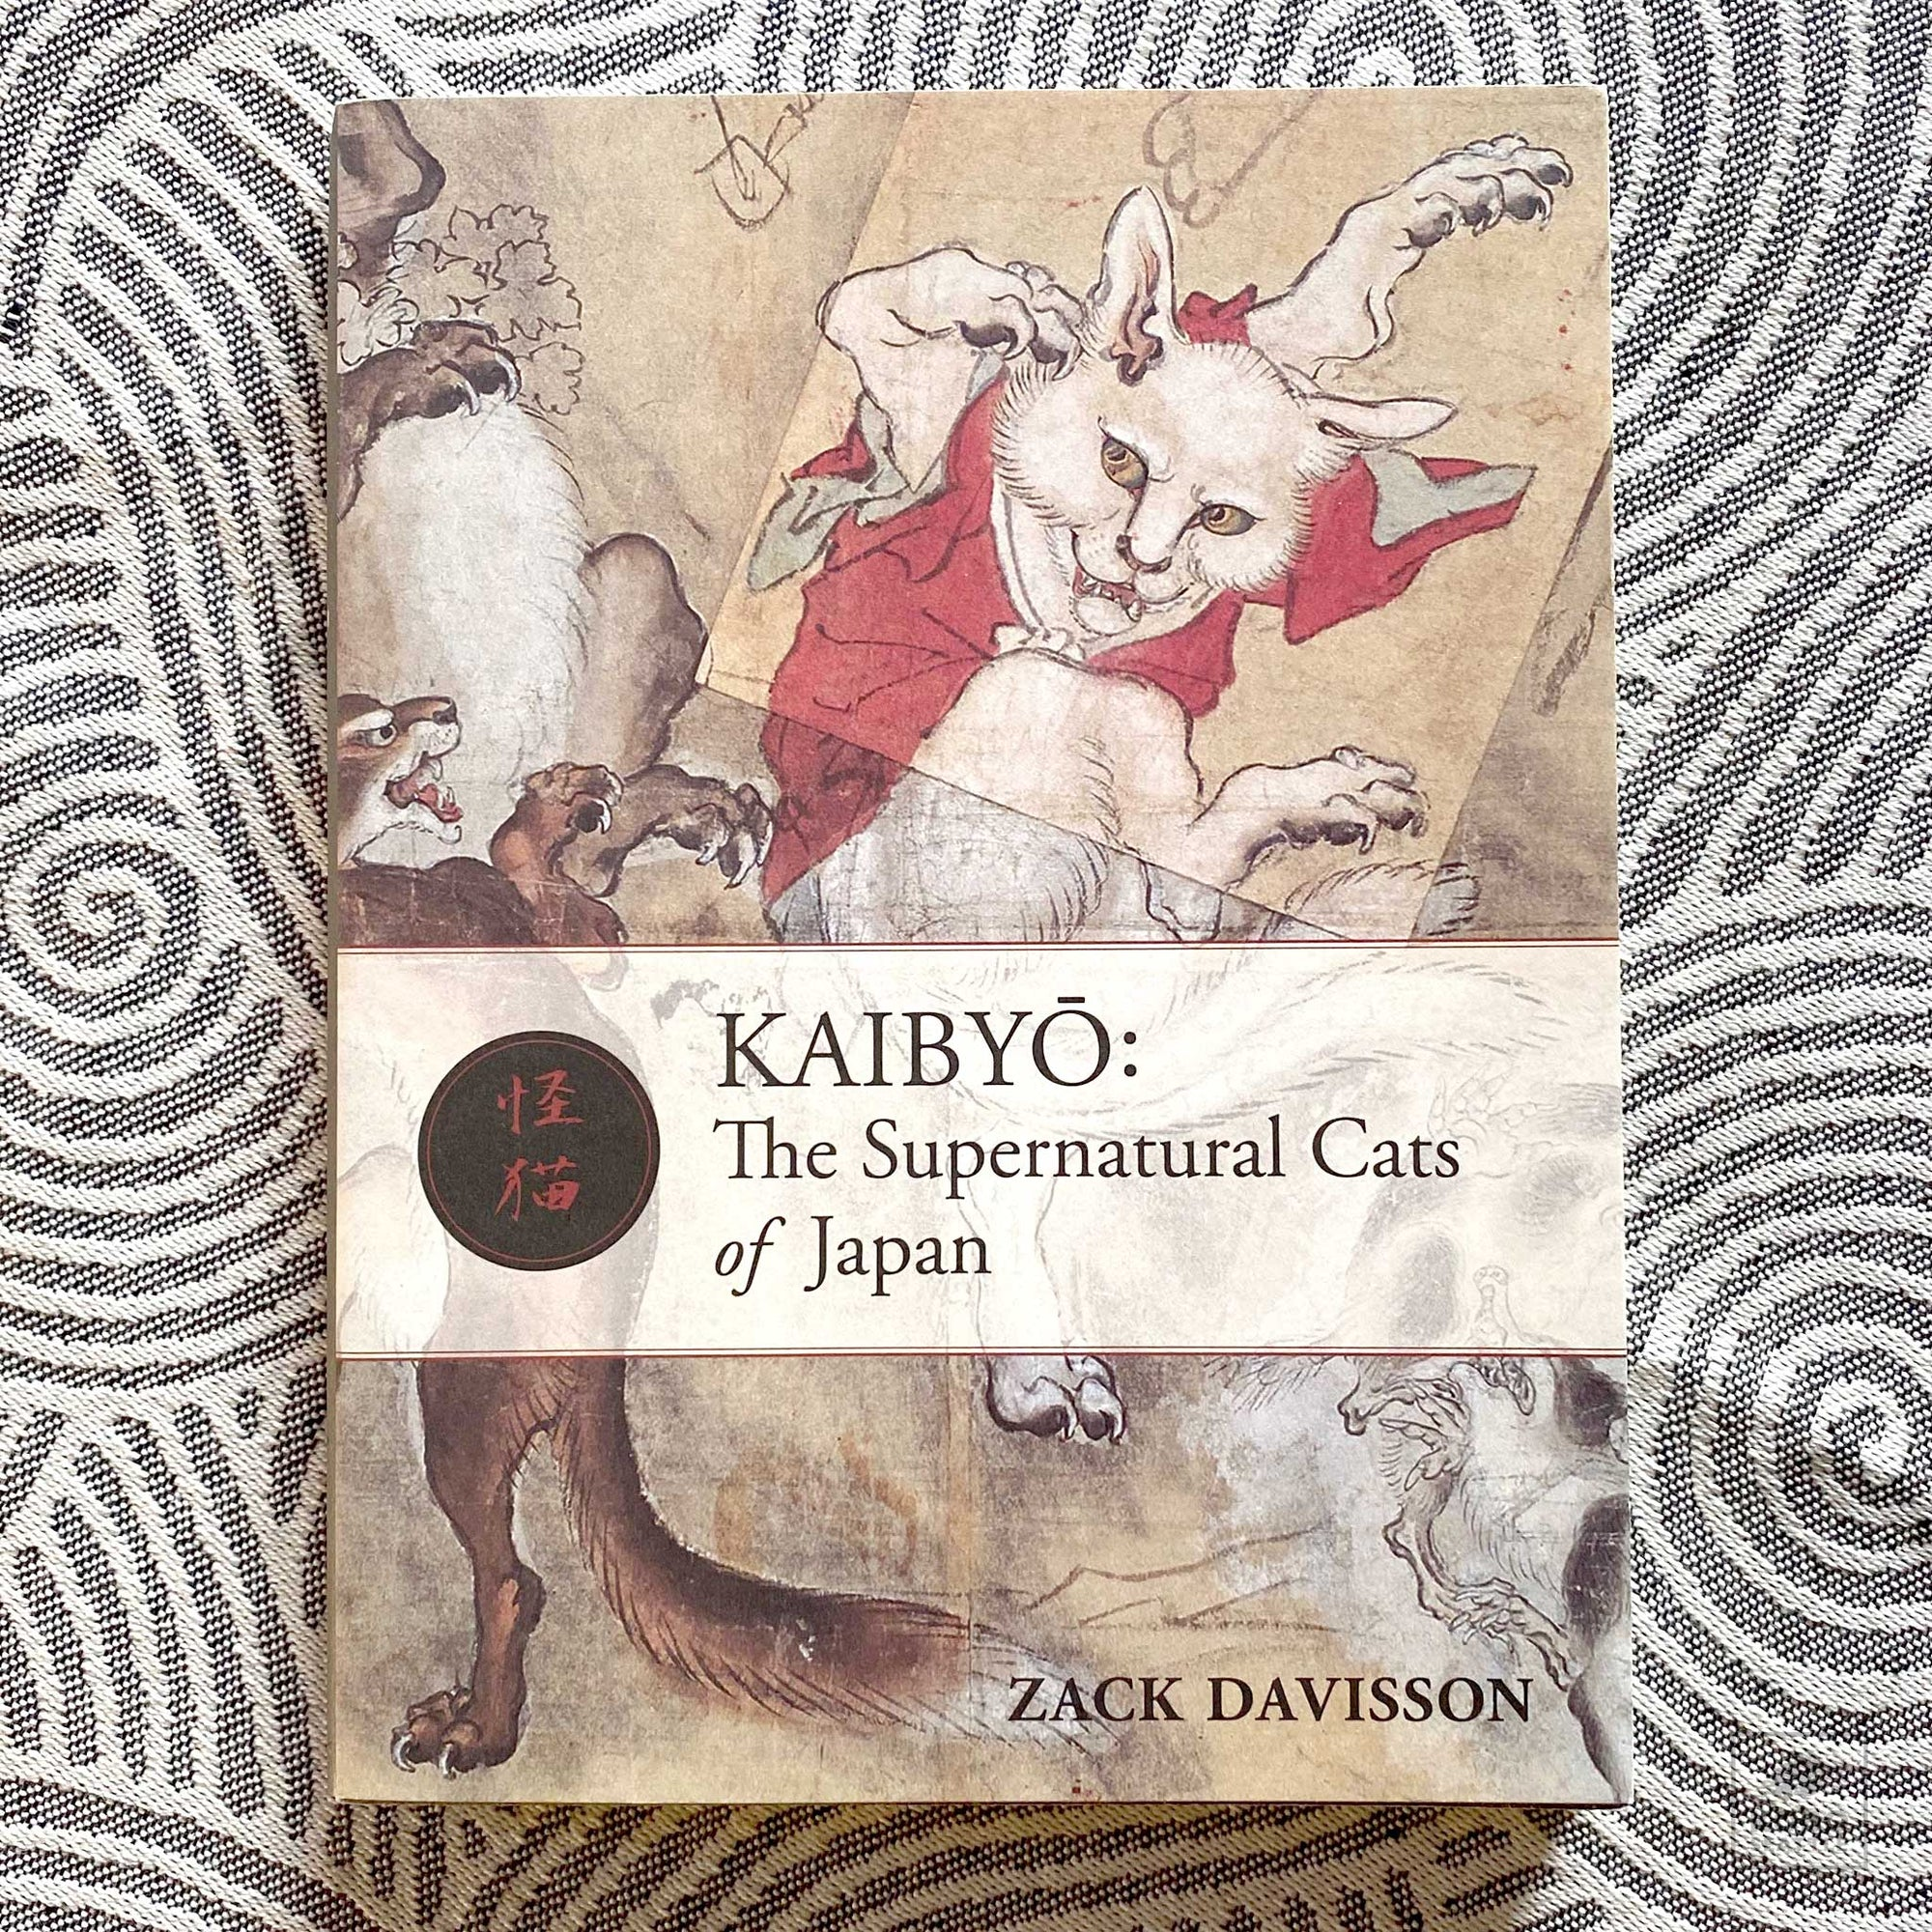 Kaibyo: The Supernatural Cats of Japan